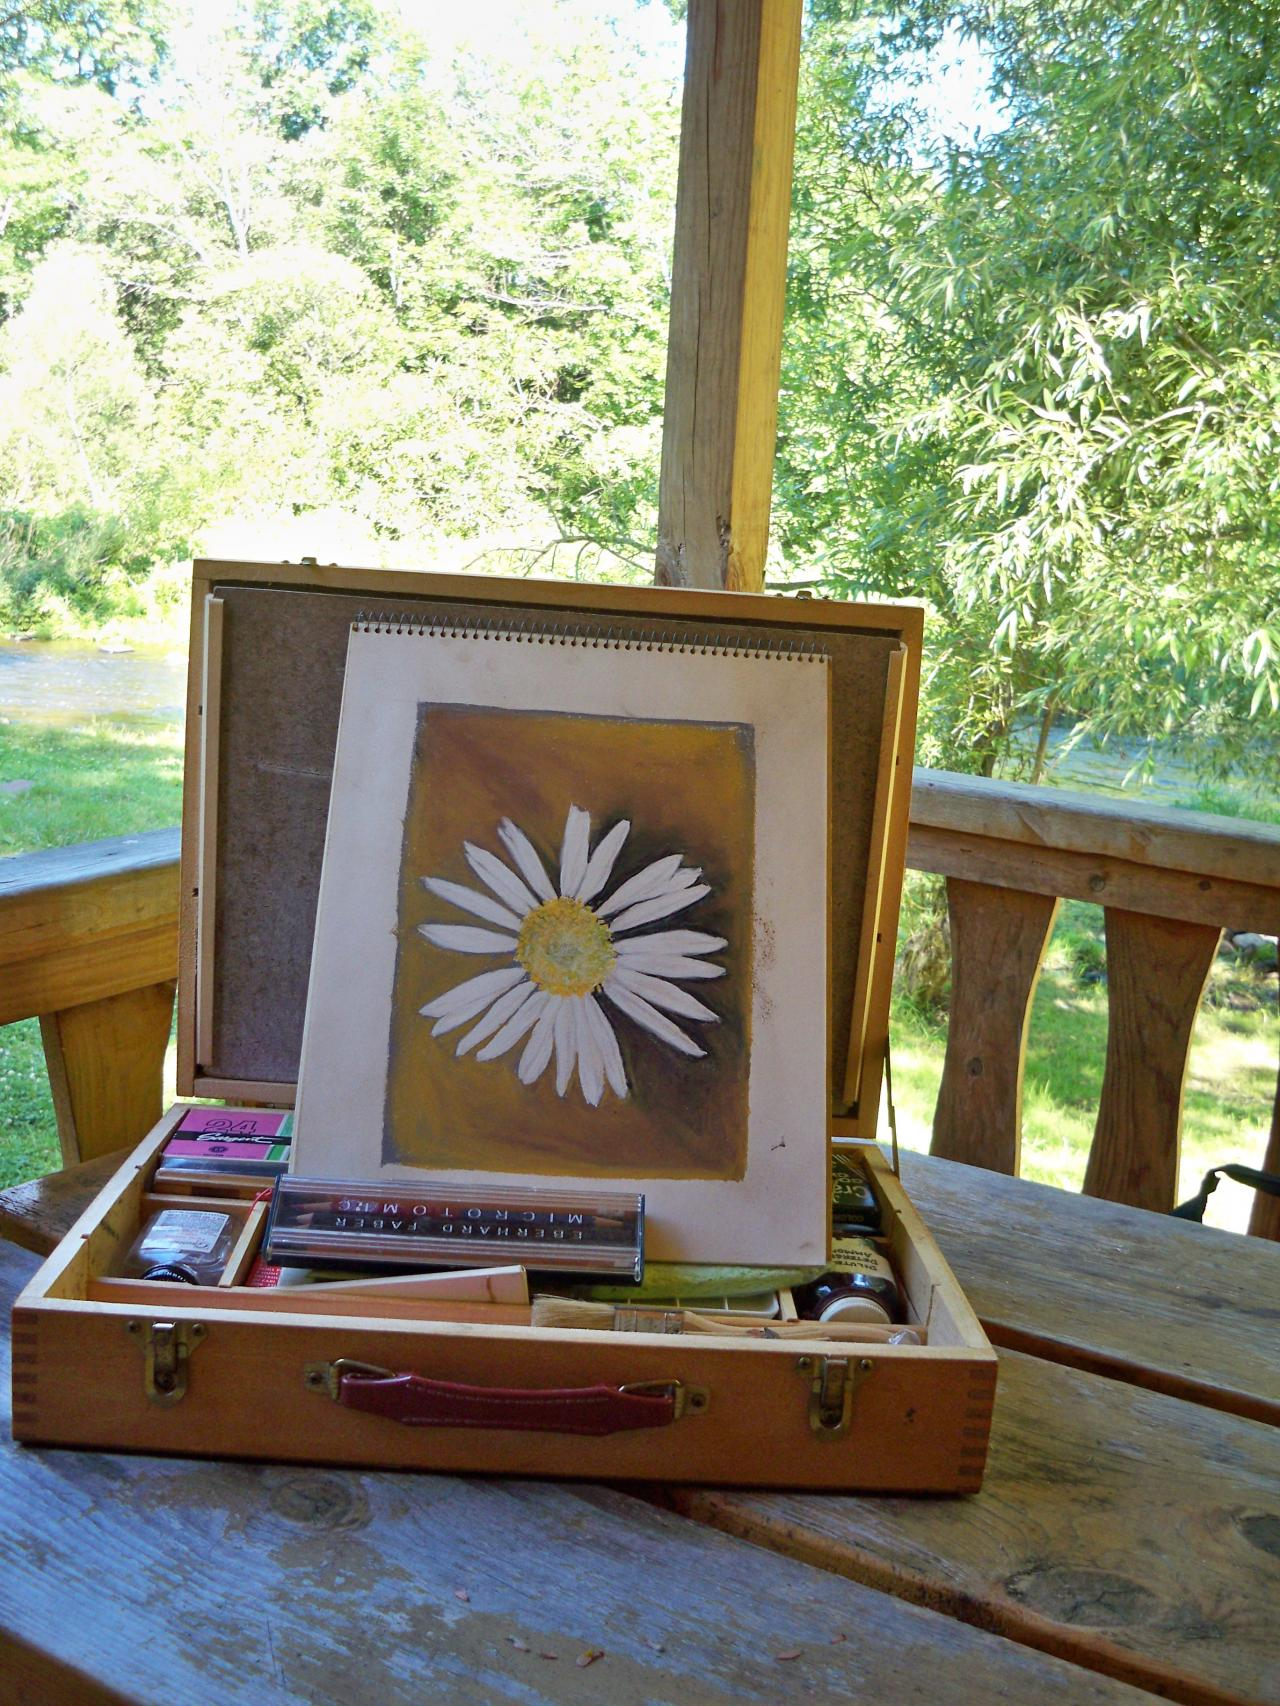 Drawing from Life Classes with Sandra are held on site or at her studio near Syracuse, NY, Liverpool Art Center & Studio II